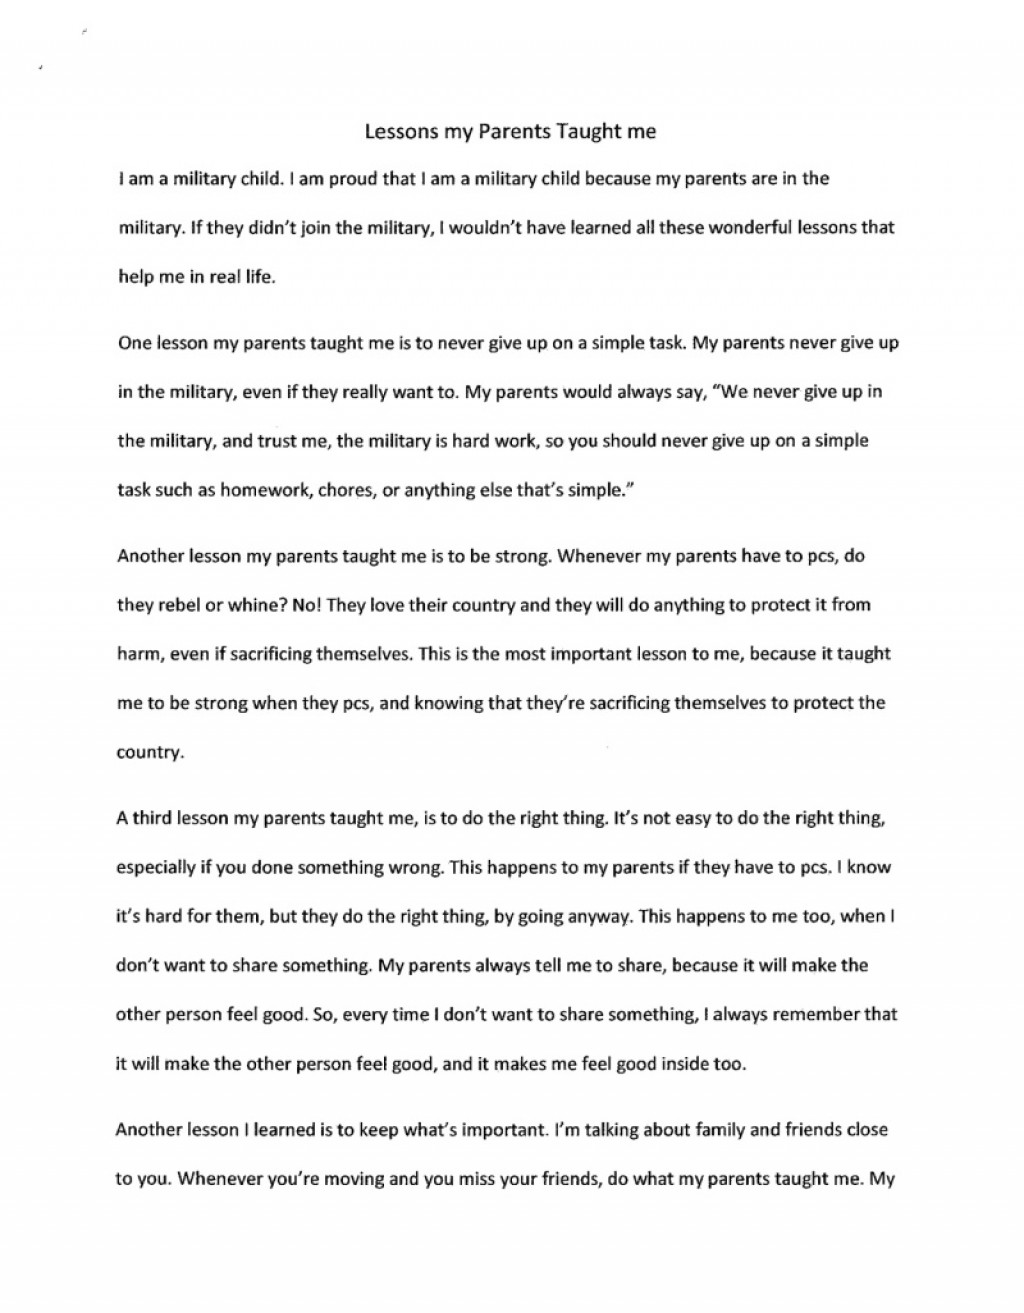 007 Life Lesson Essay Example Formidable Valuable My Life's Greatest Ideas Large